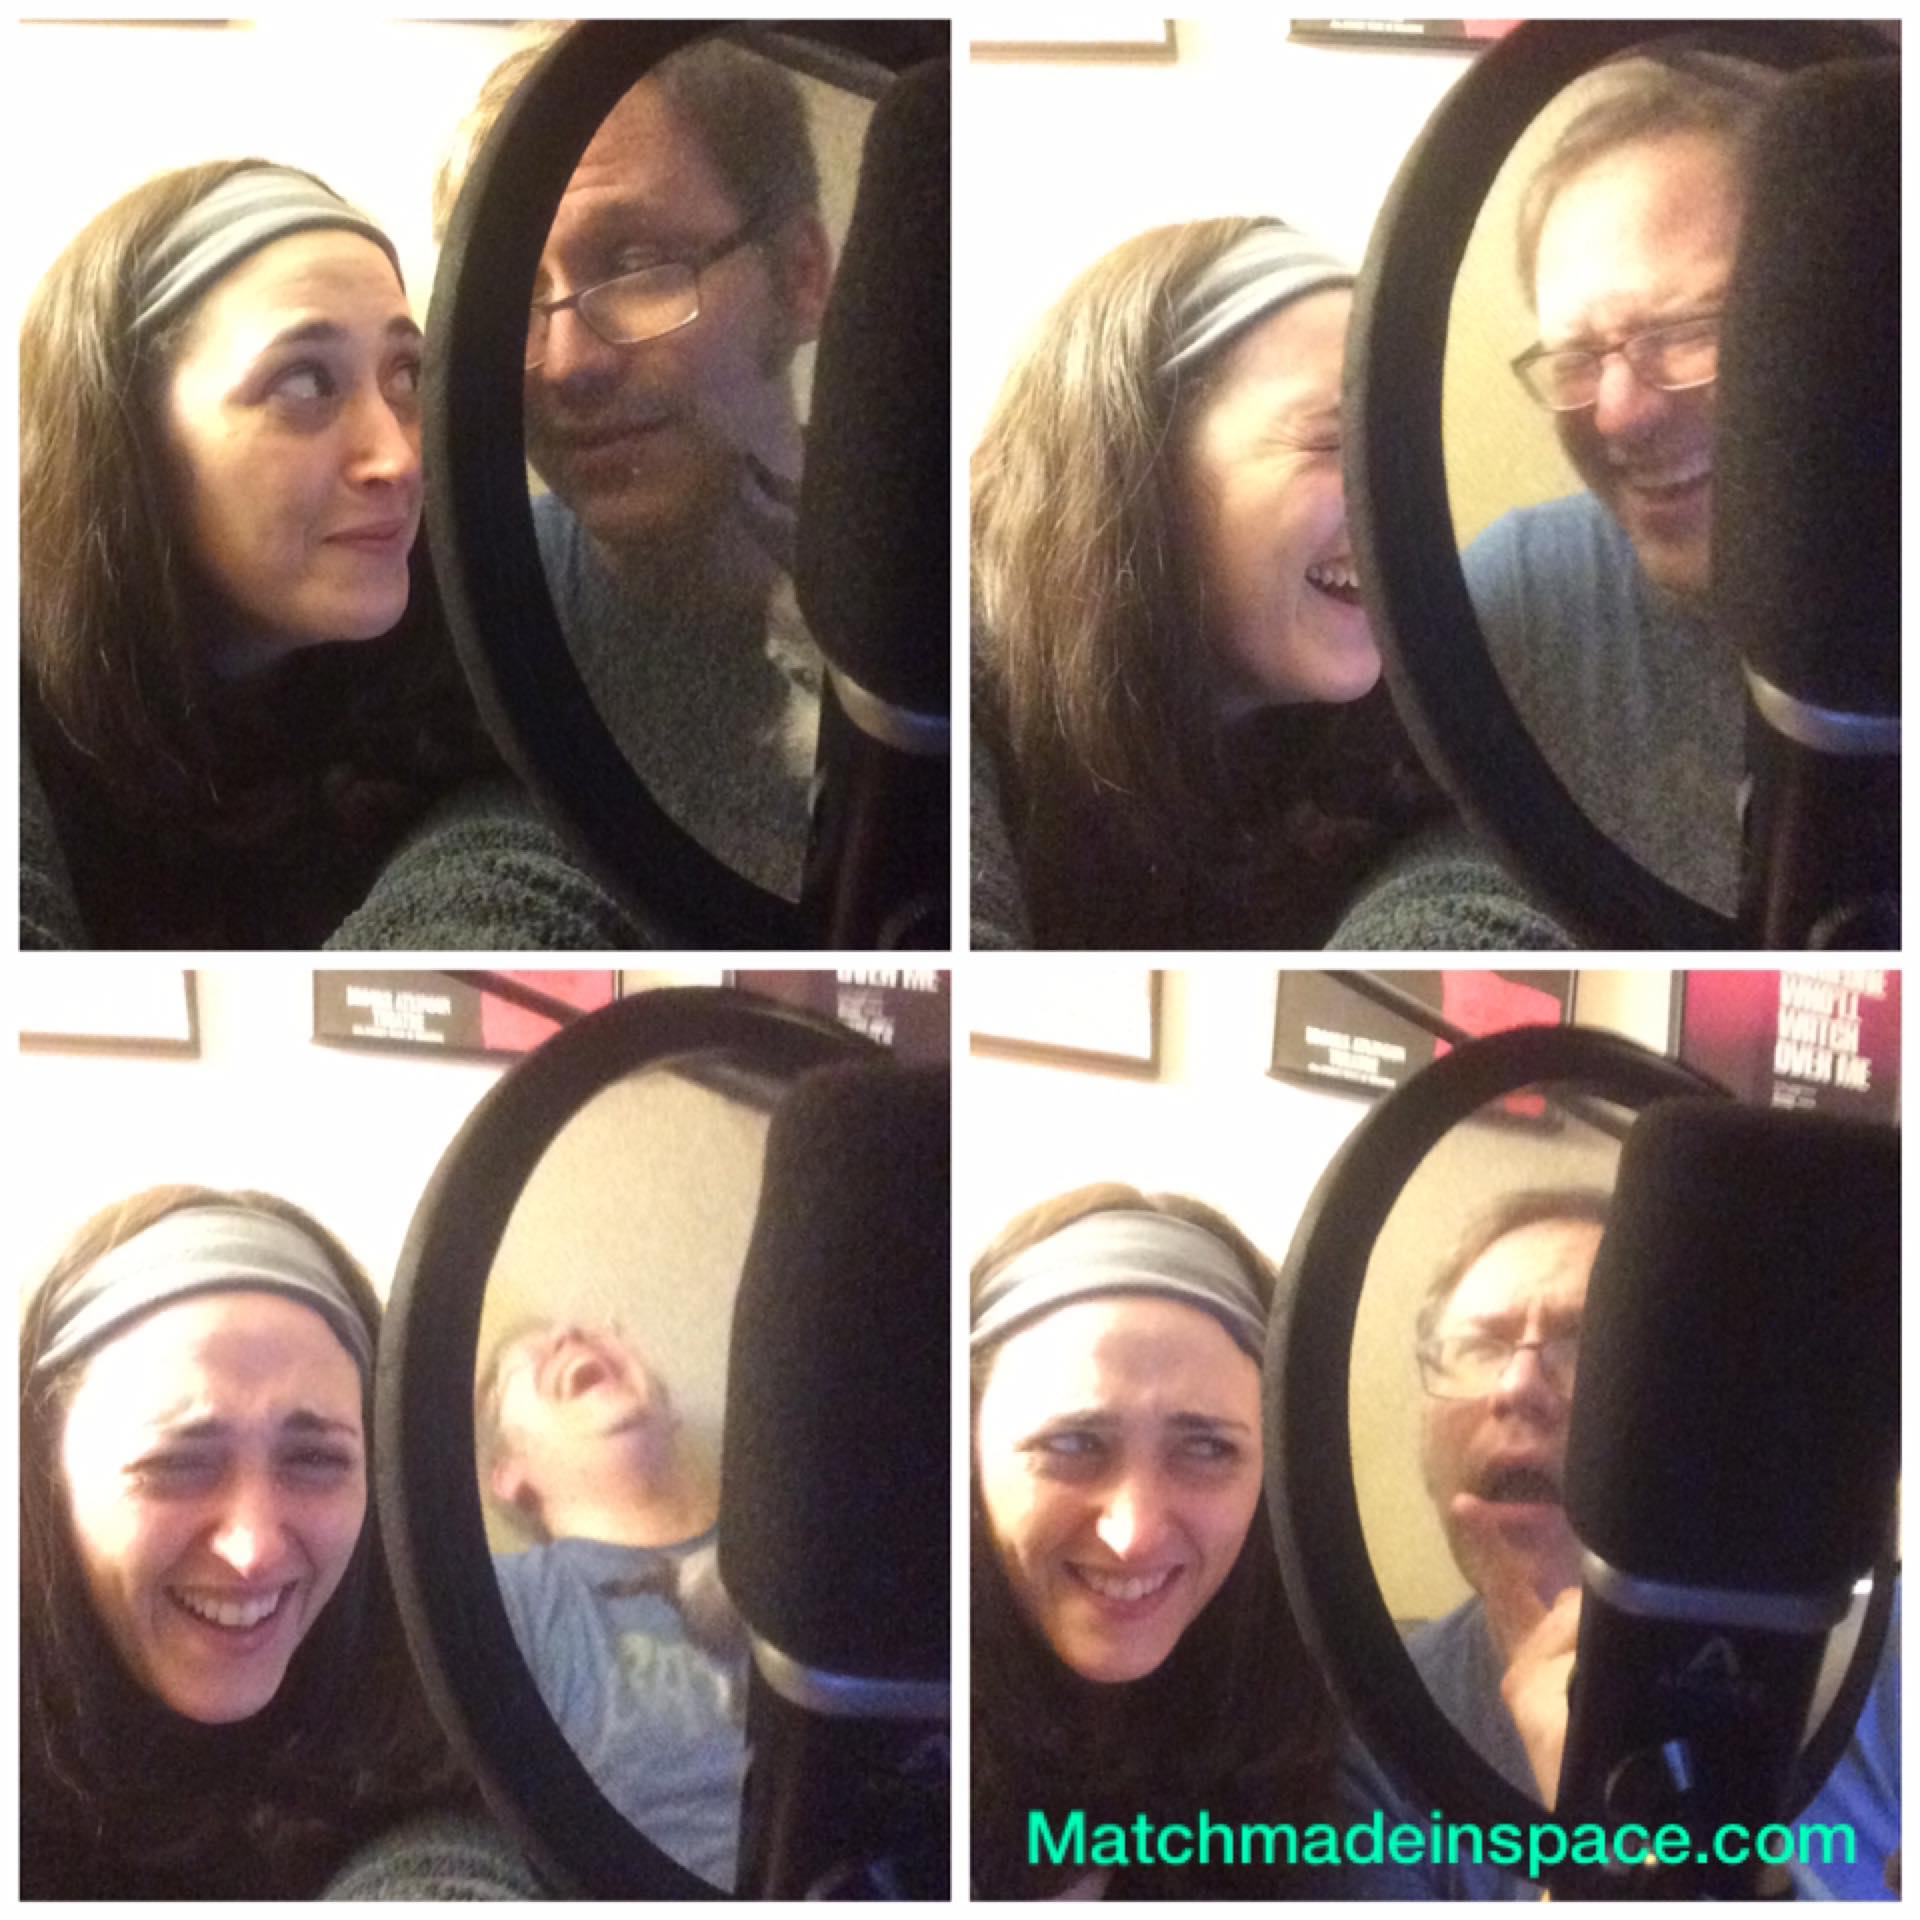 Our chemistry when we pretend to record a podcast while taking selfies is amazing.